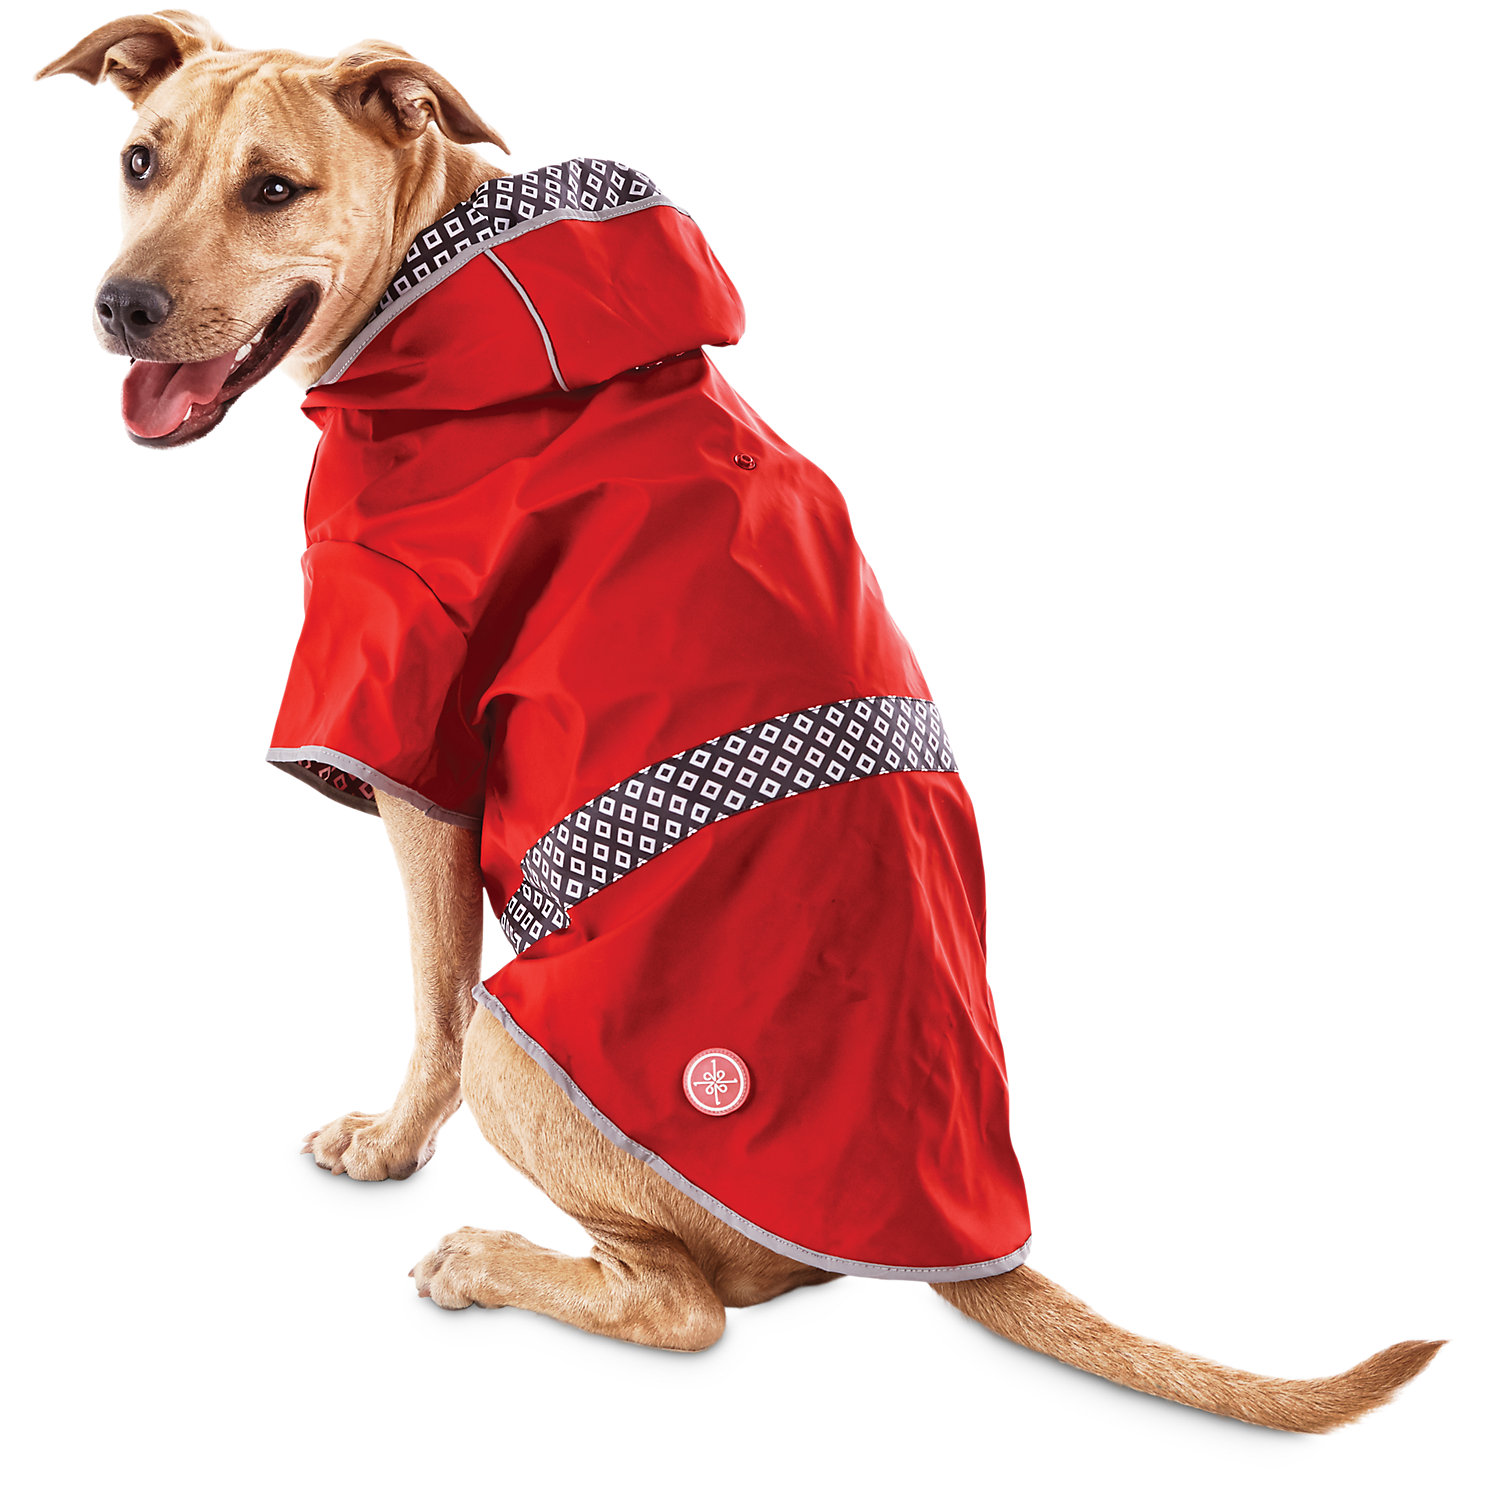 Good2go Reversible Dog Raincoat In Red, Large